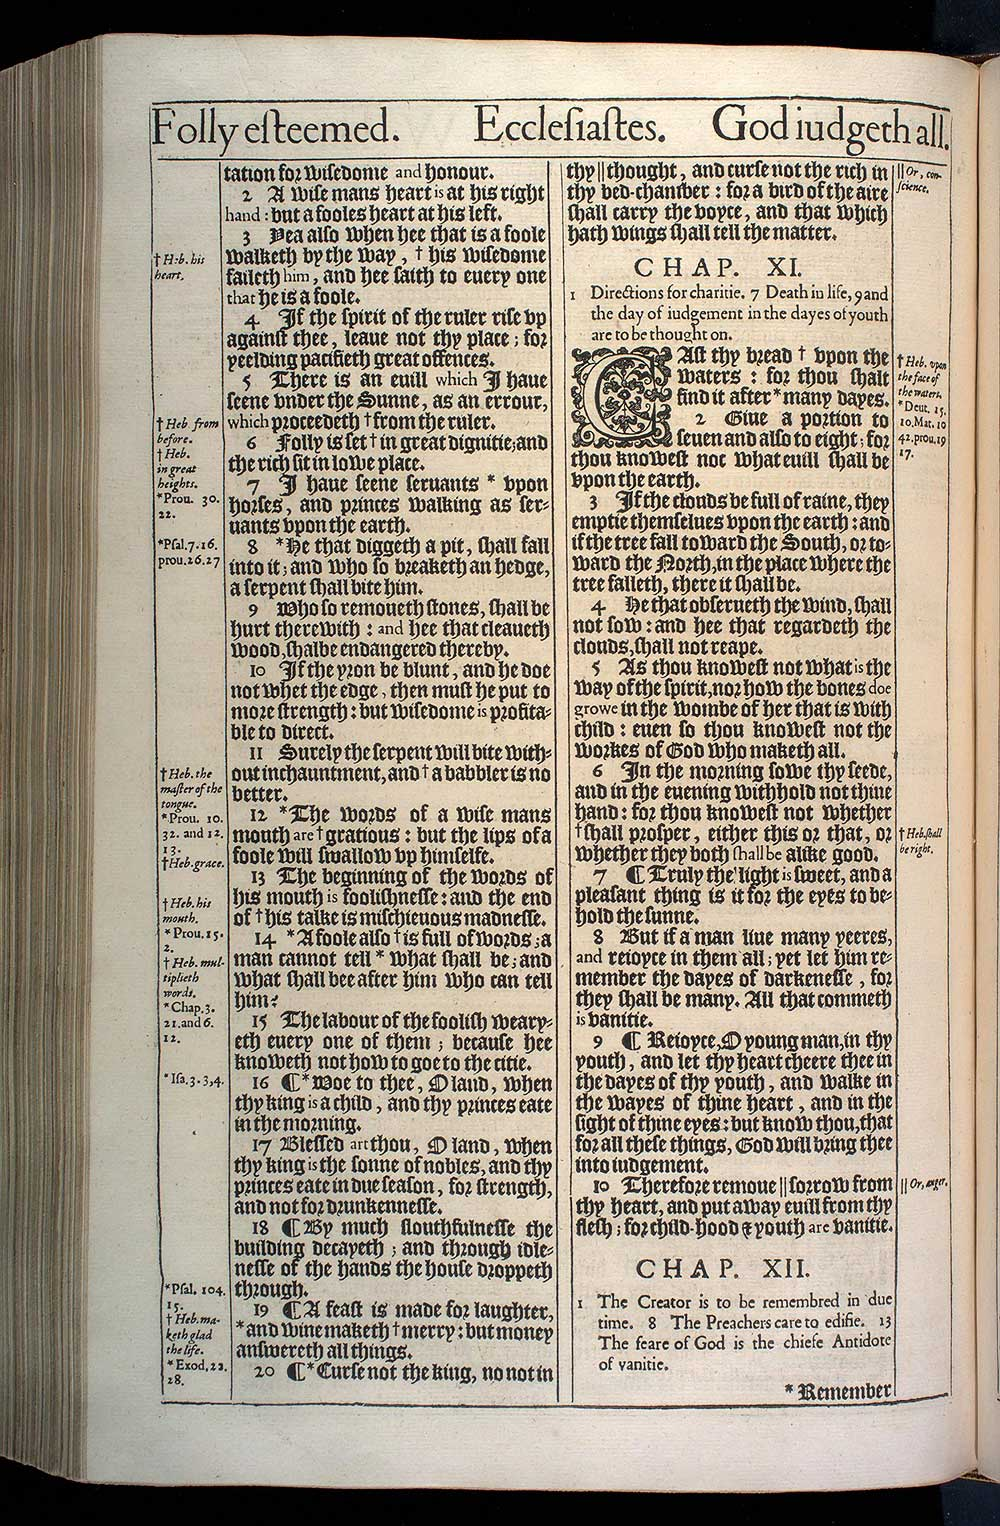 Ecclesiastes Chapter 11 Original 1611 Bible Scan